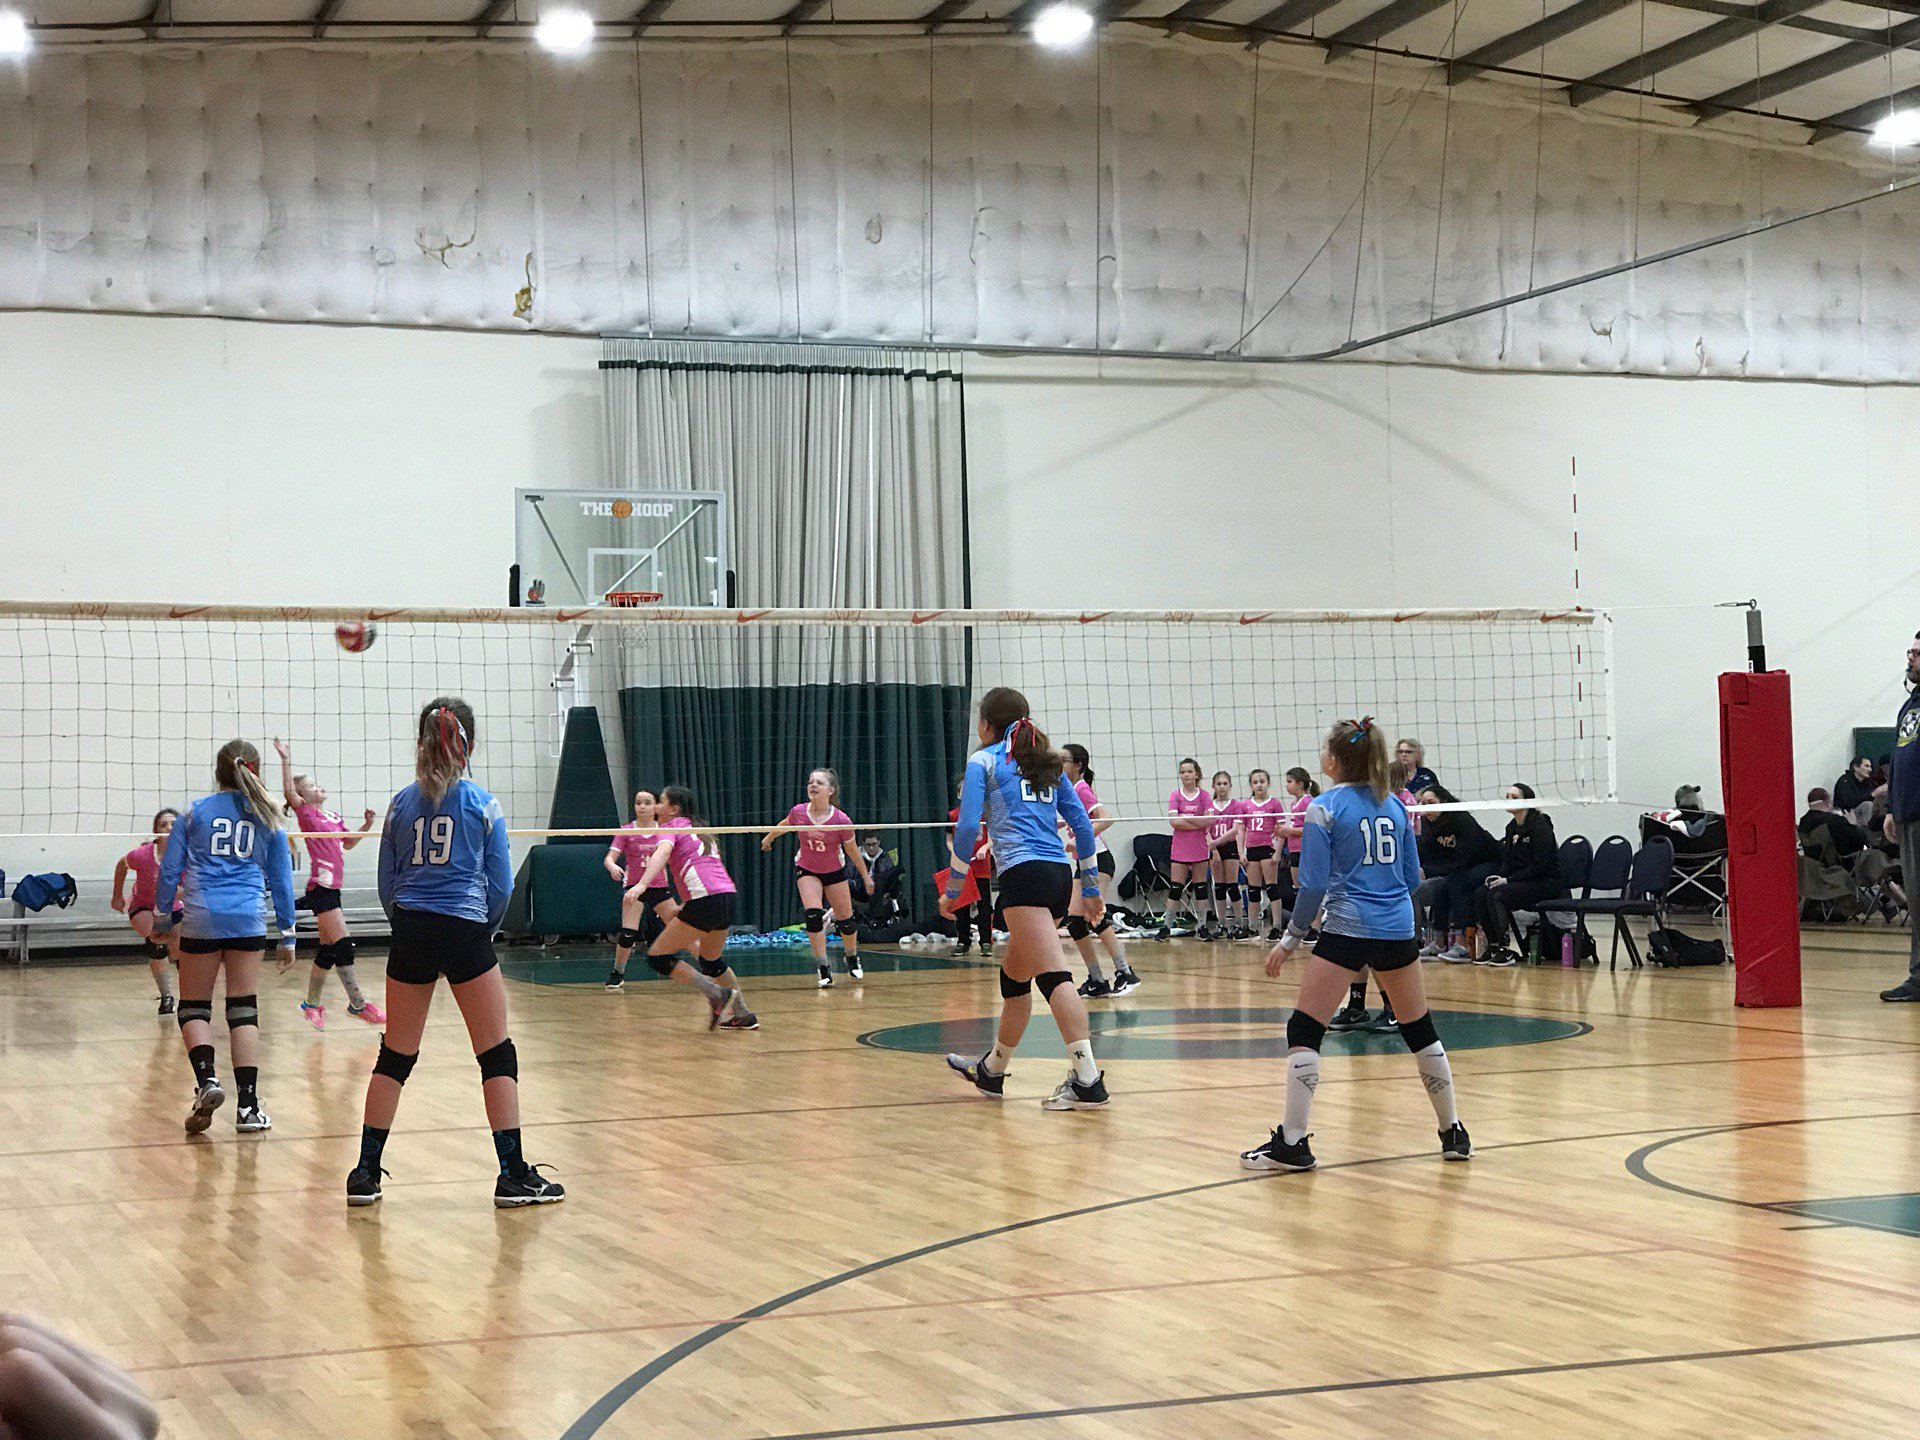 Volleyball tournament (@ The Hoop…